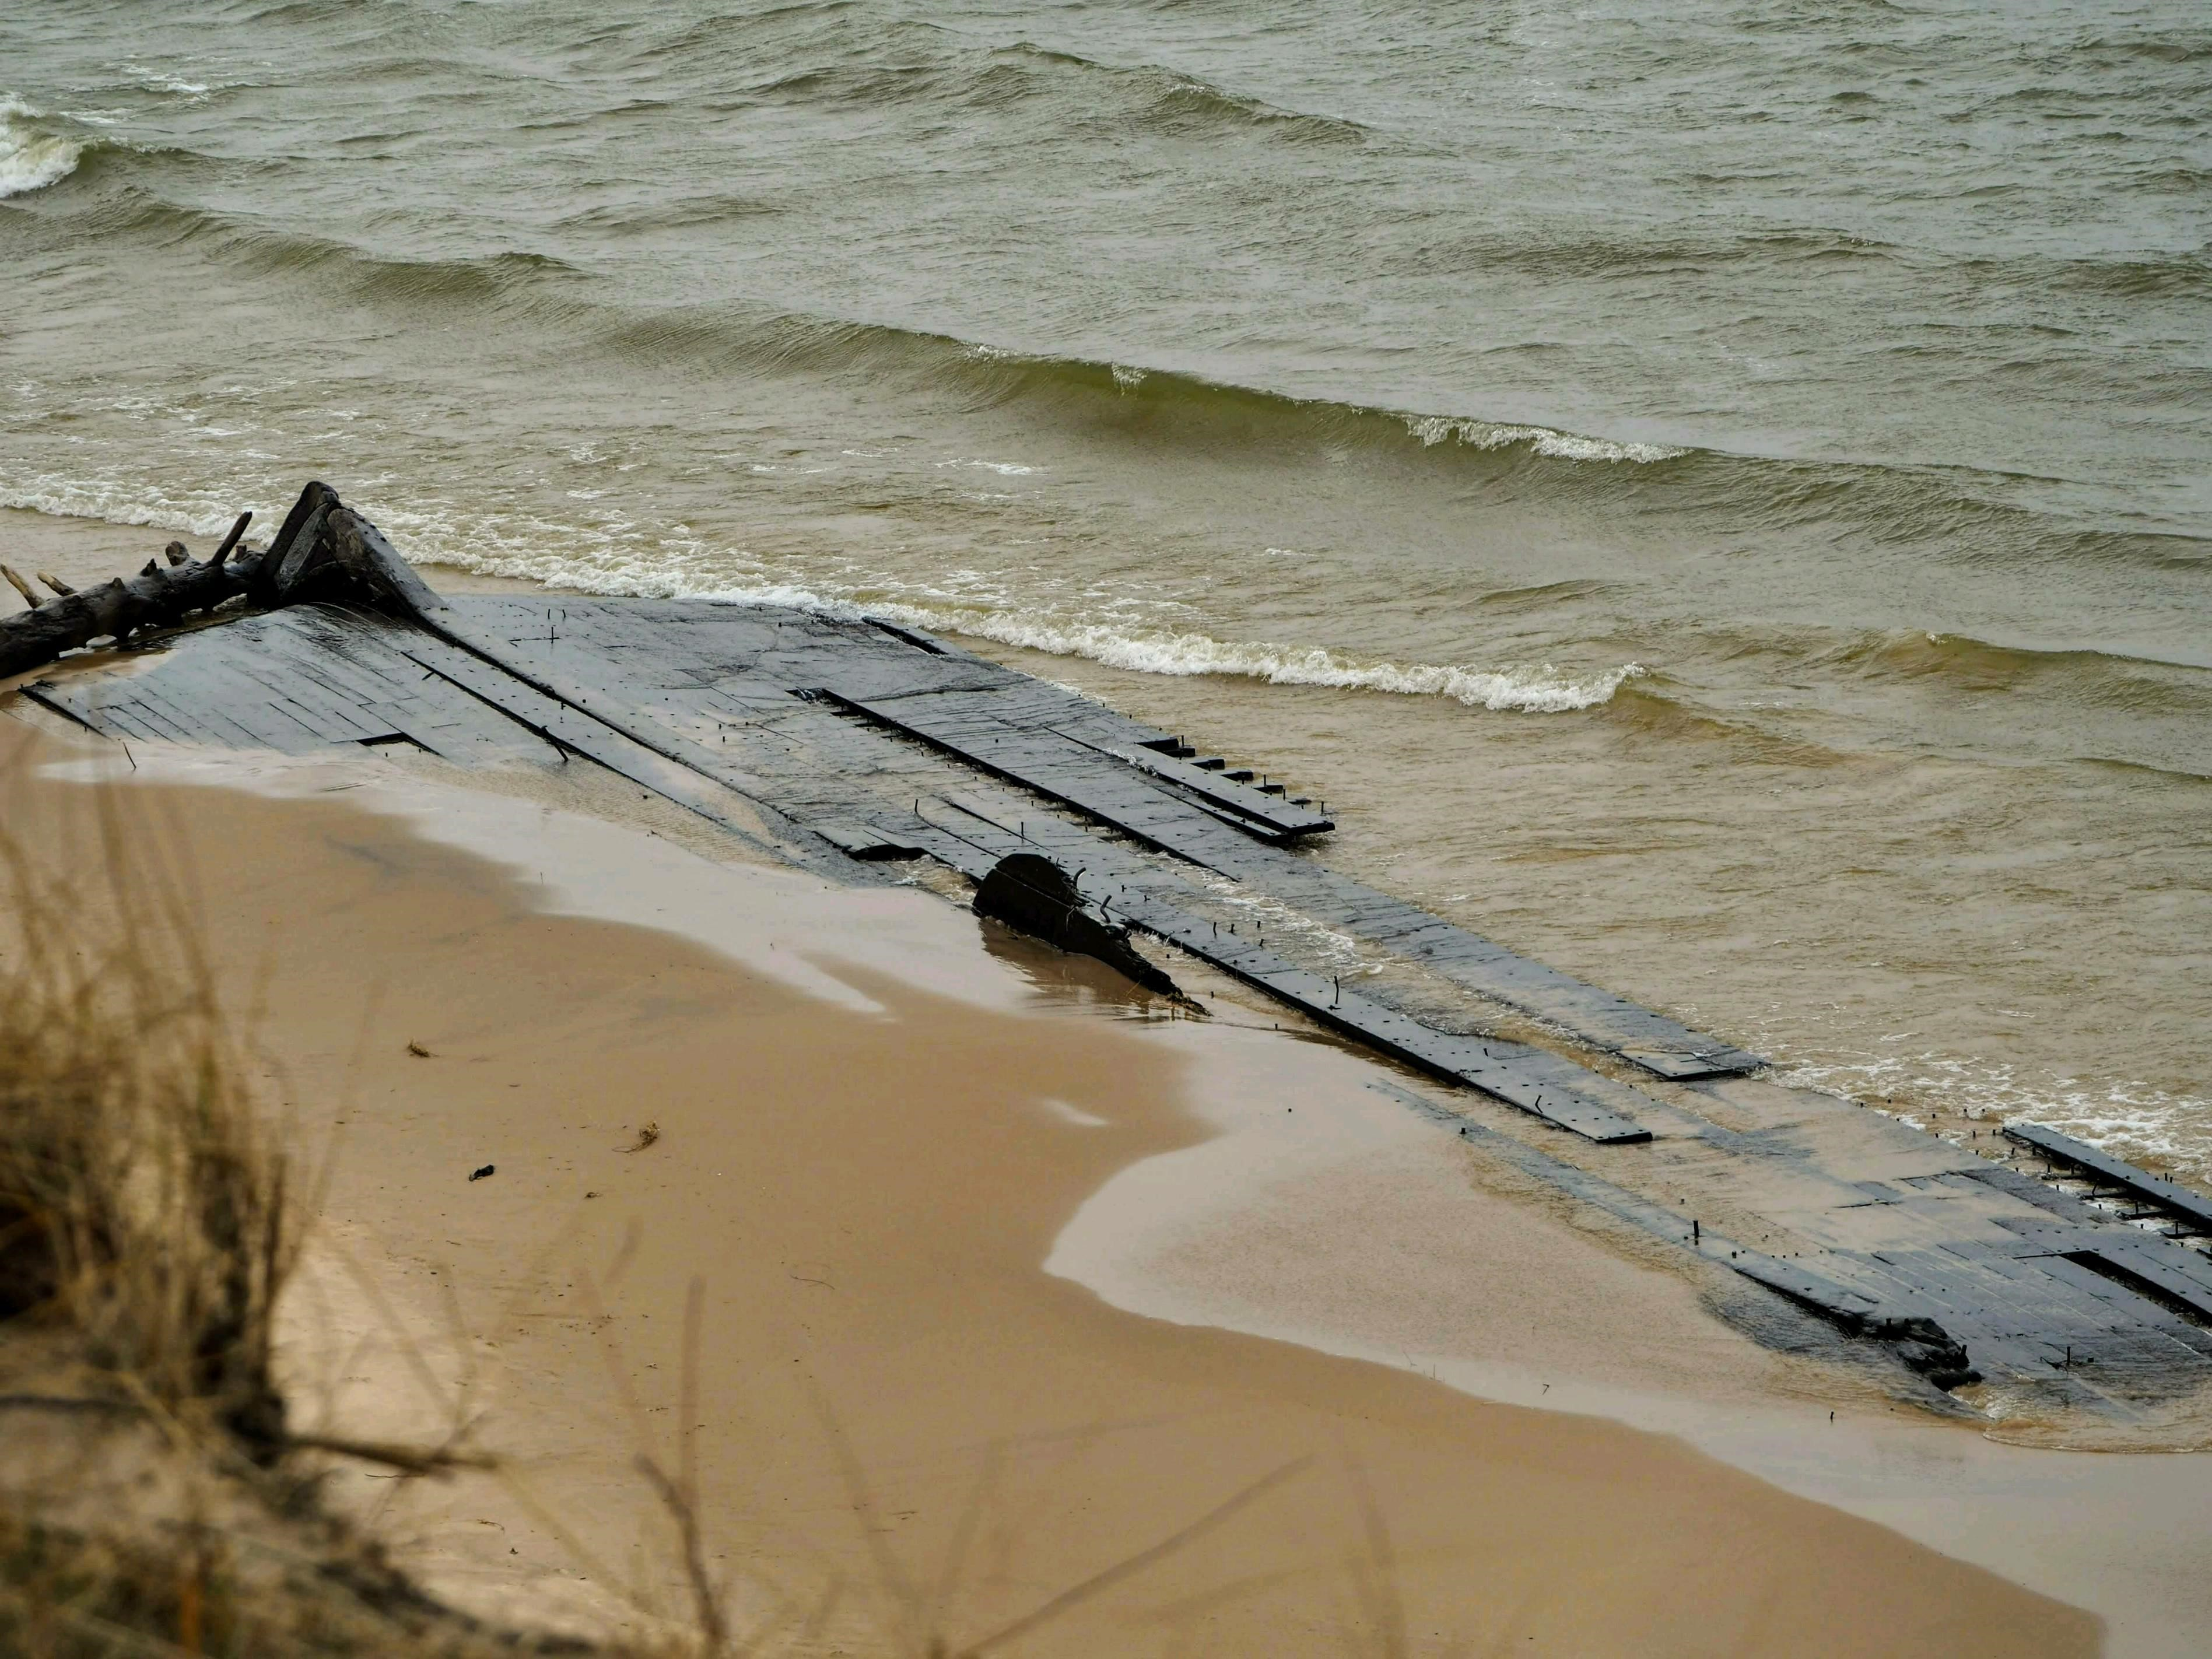 Mysterious shipwreck 'disappears' into Lake Michigan, new photos show